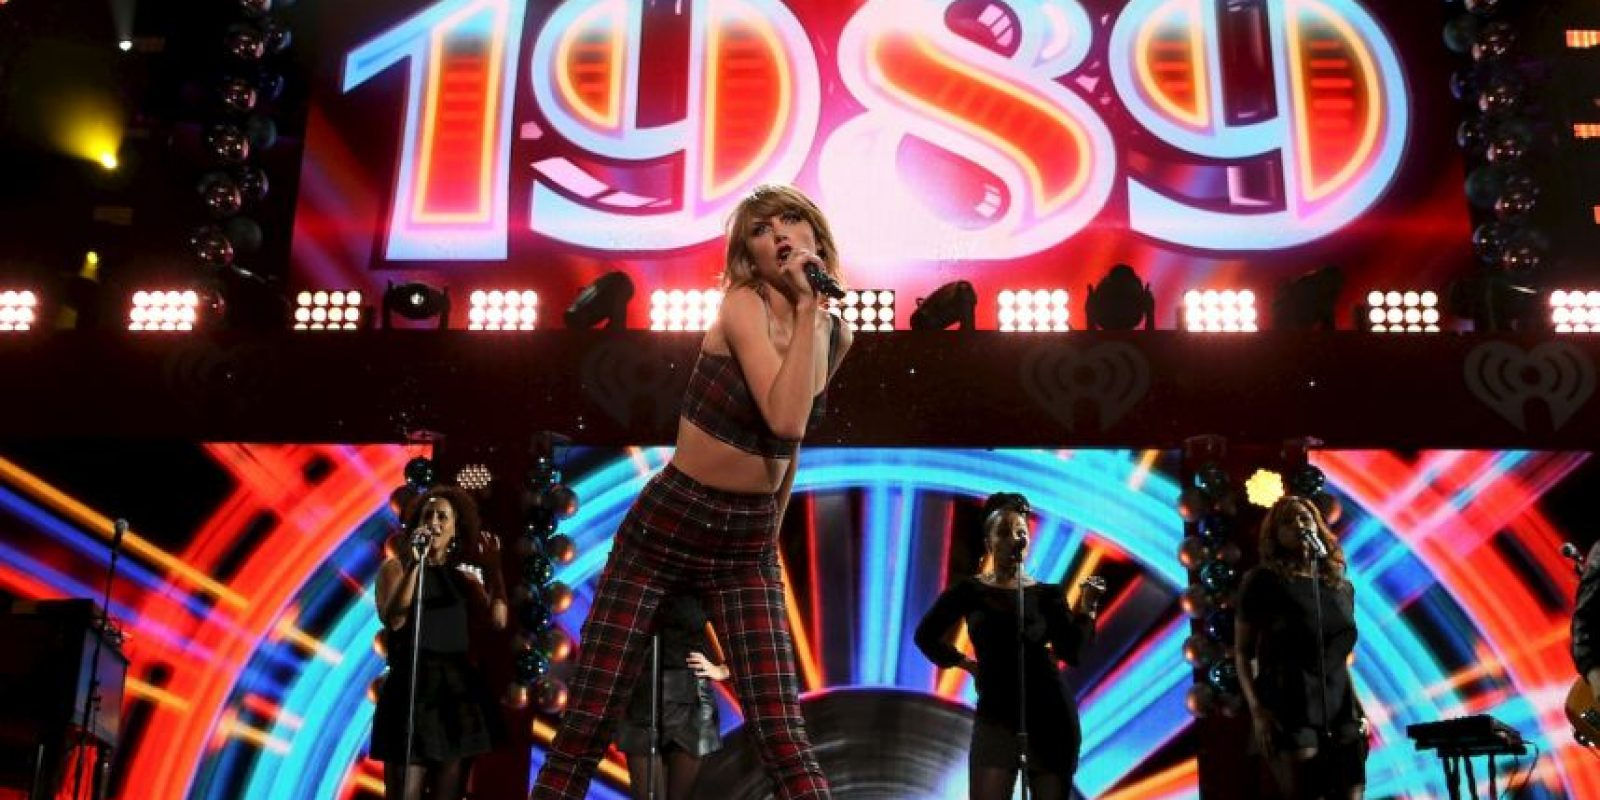 """The 1989 Tour"" es la cuarta gira que Taylor Swift realiza. Foto: Getty Images"